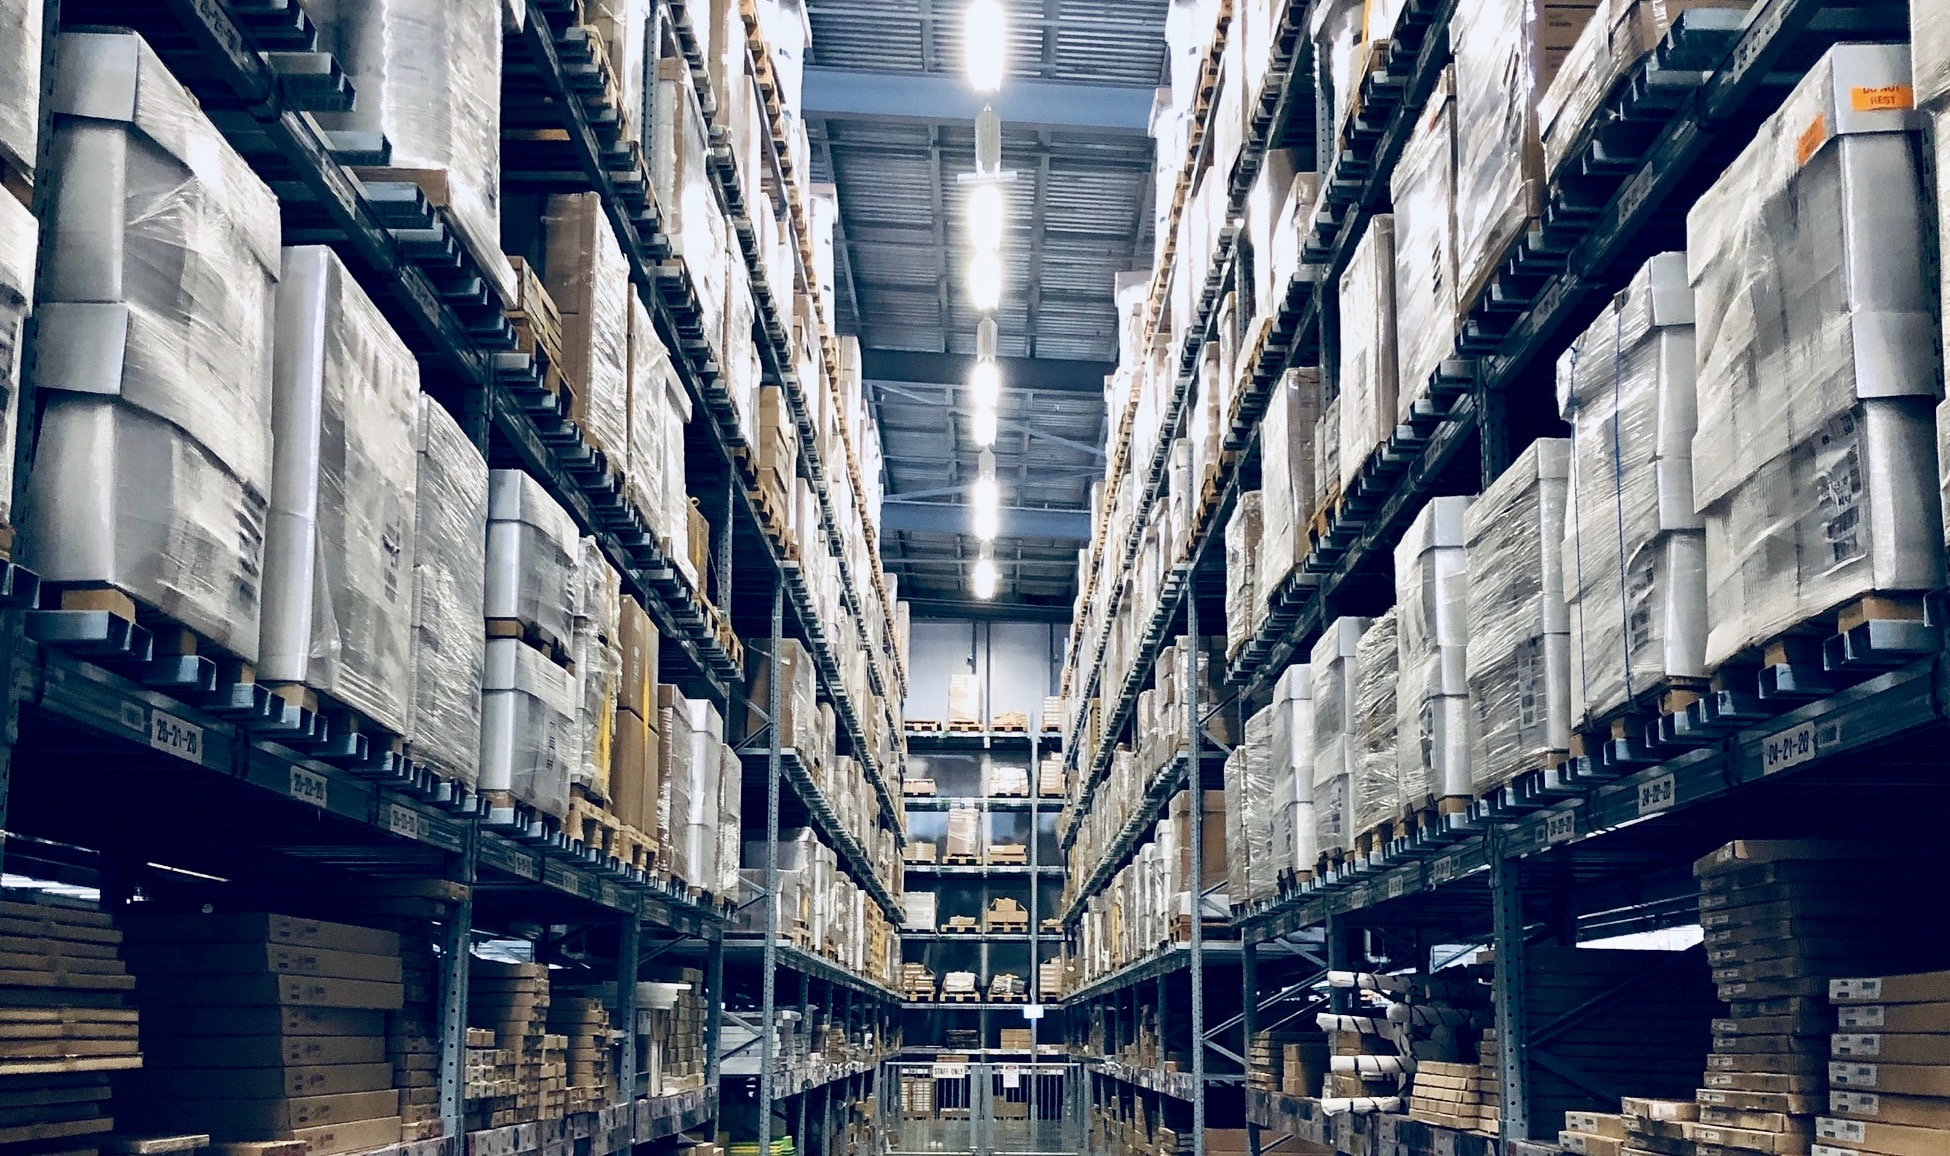 Warehouse Management: challenges and advancements